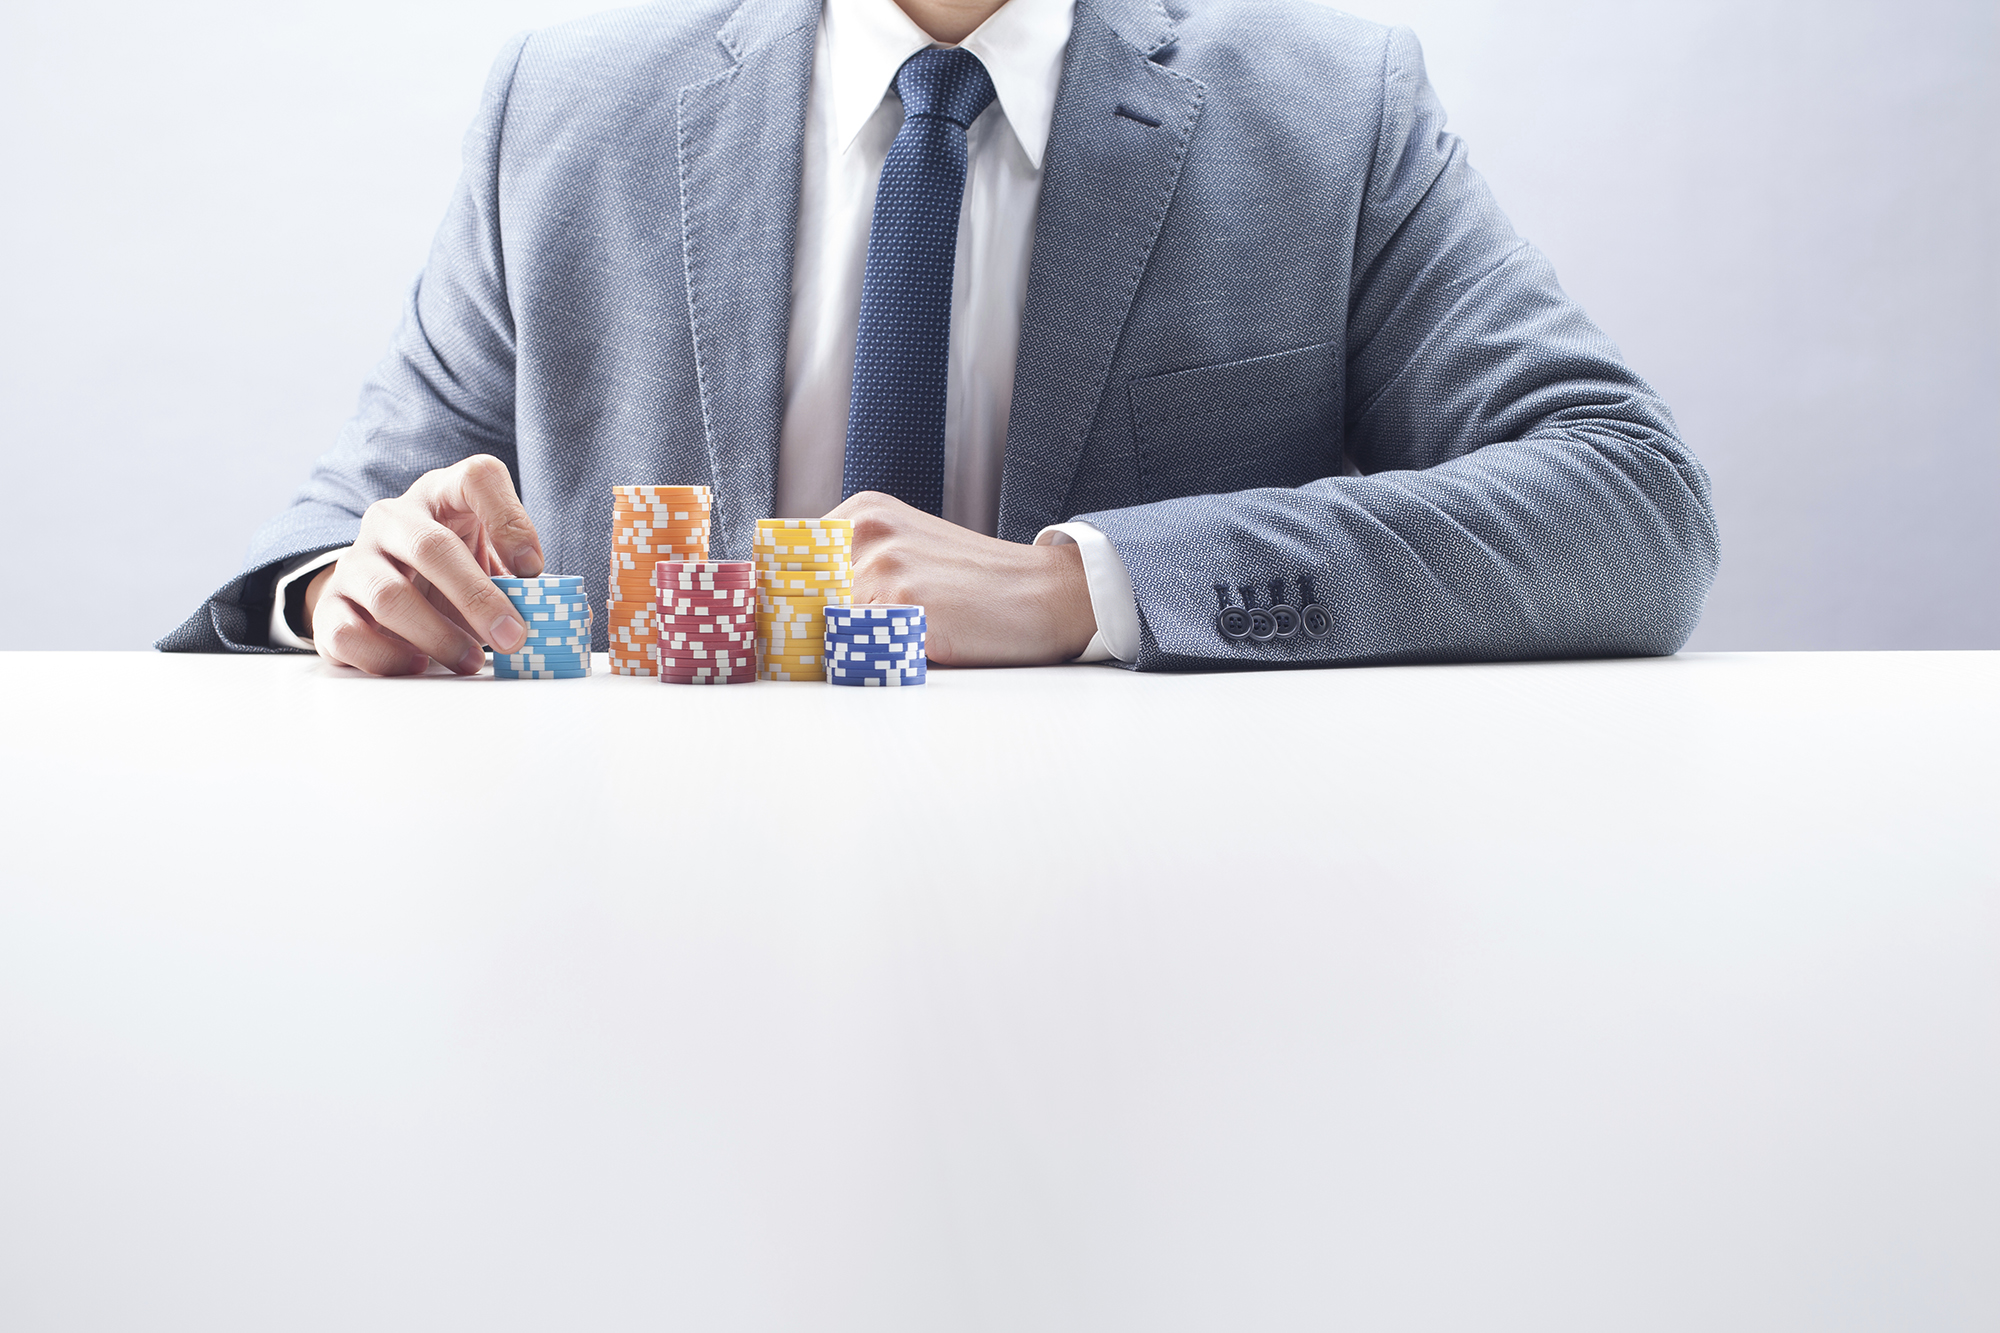 man with poker chips